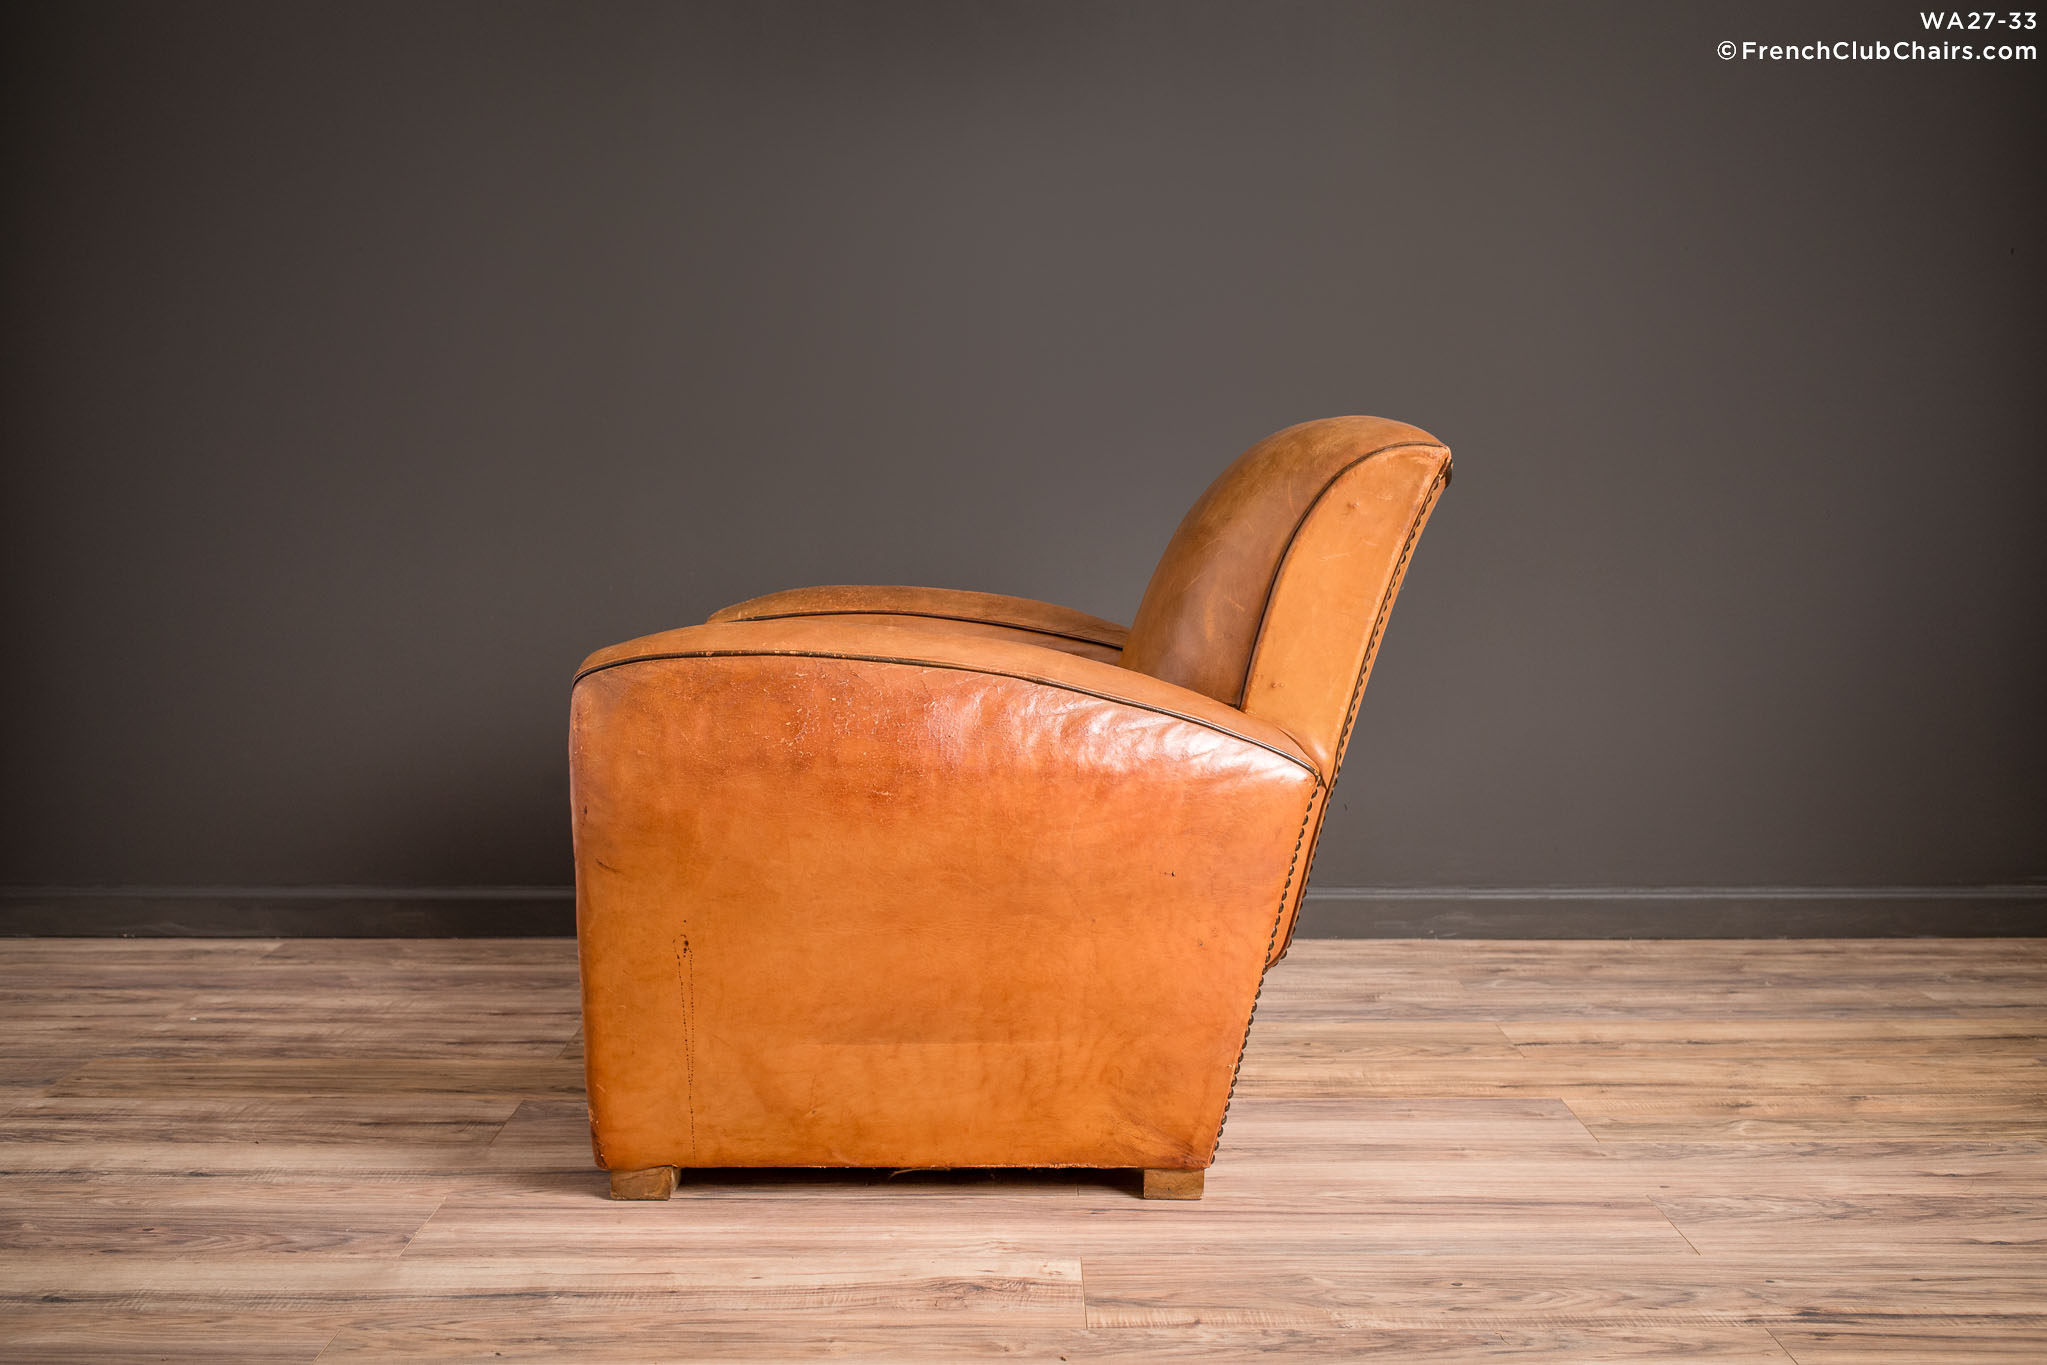 WA_27-33_Slope_Saintes_Solo_R_4LT-v01-williams-antiks-leather-french-club-chair-wa_fcccom